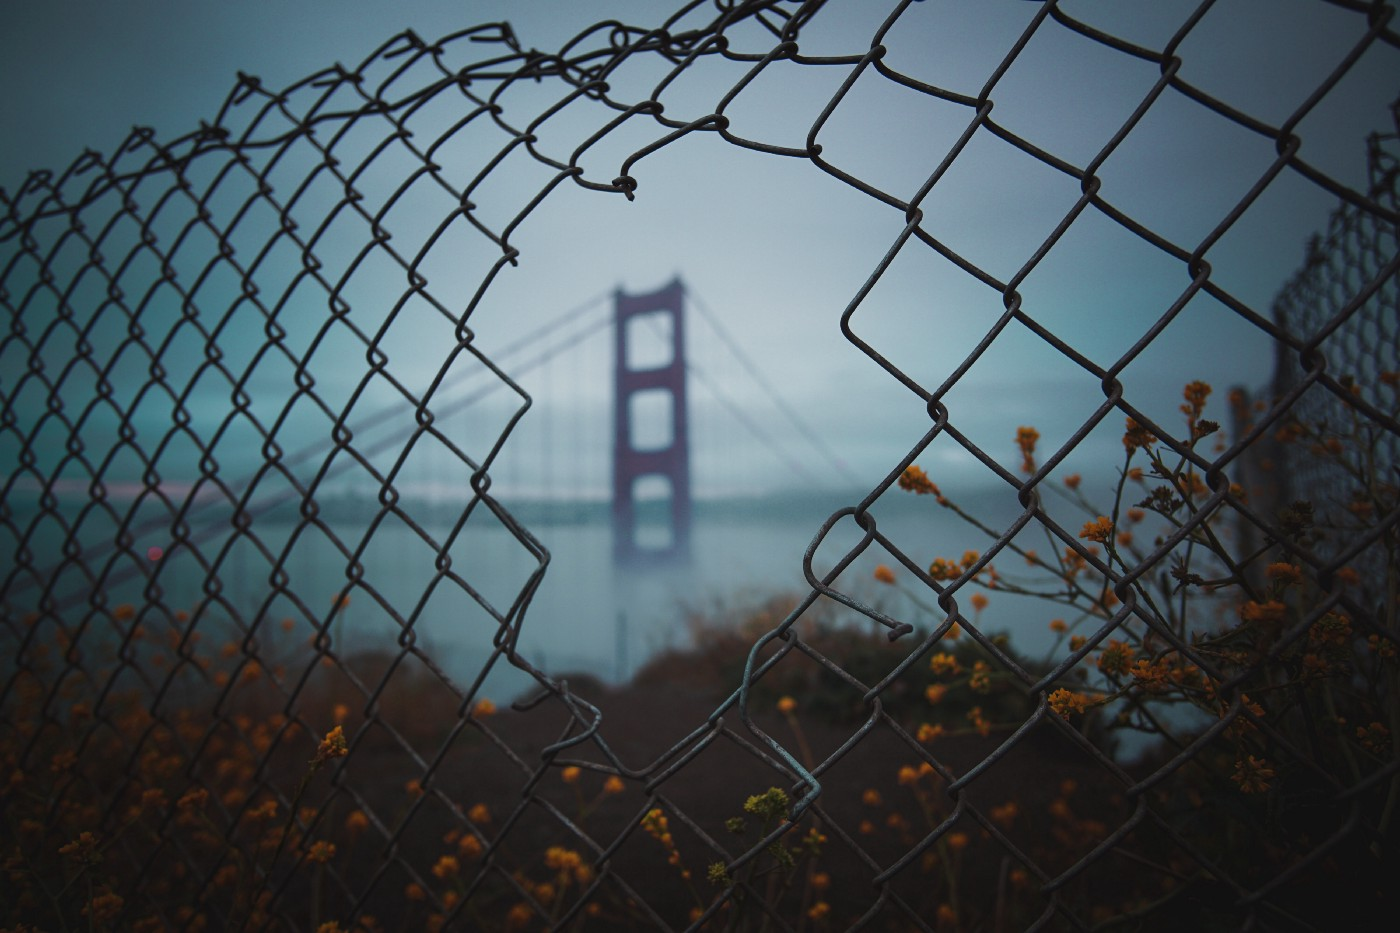 Peering through a chainlink fence, you see the foggy outlines of the golden gate bridge.